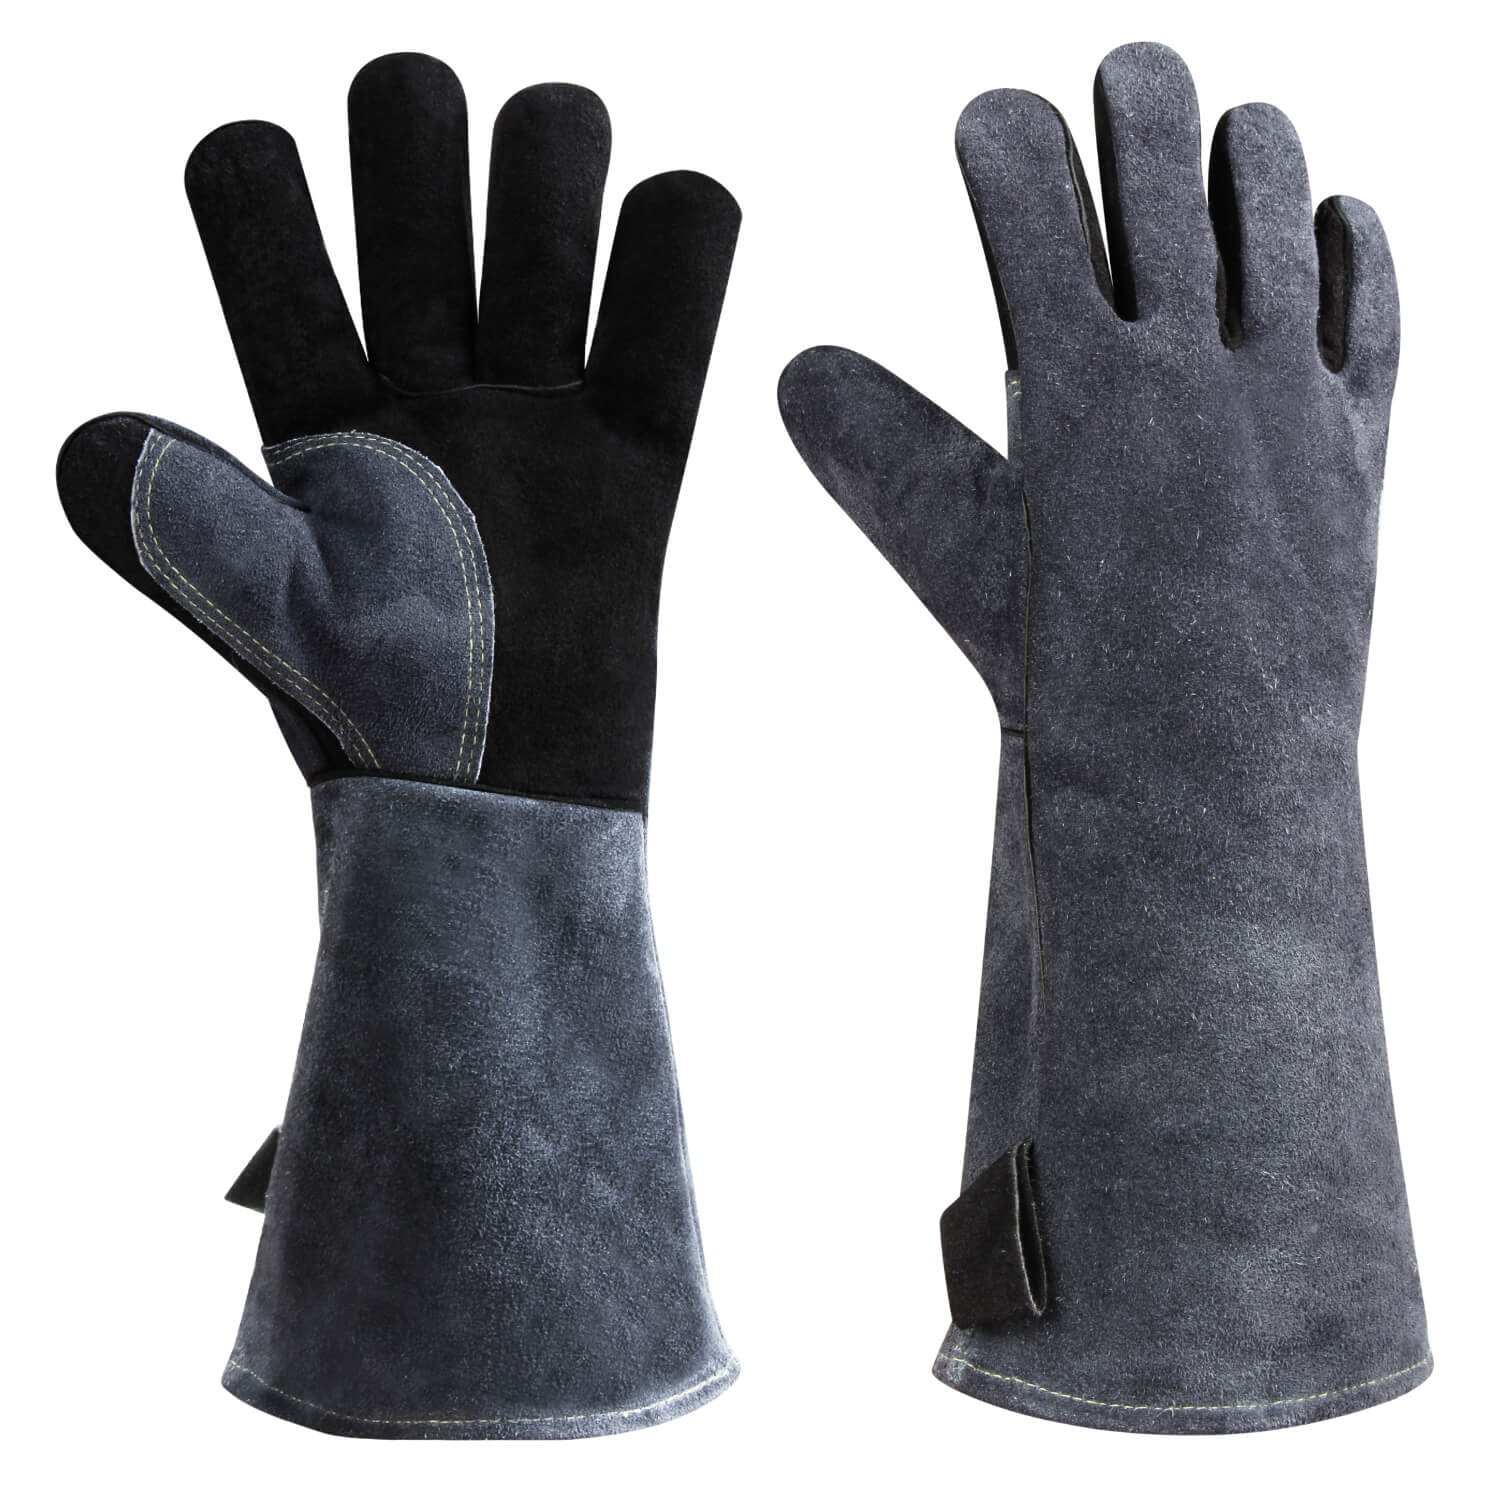 Upgrade Welding BBQ Gloves, 932°F Heat Resistant Leather Grill Glove for Tig Welder/Grilling/Barbecue/Oven/Fireplace/Wood Stove - Long Sleeve and Insulated Cotton Lining - Black-gray(16-inch)